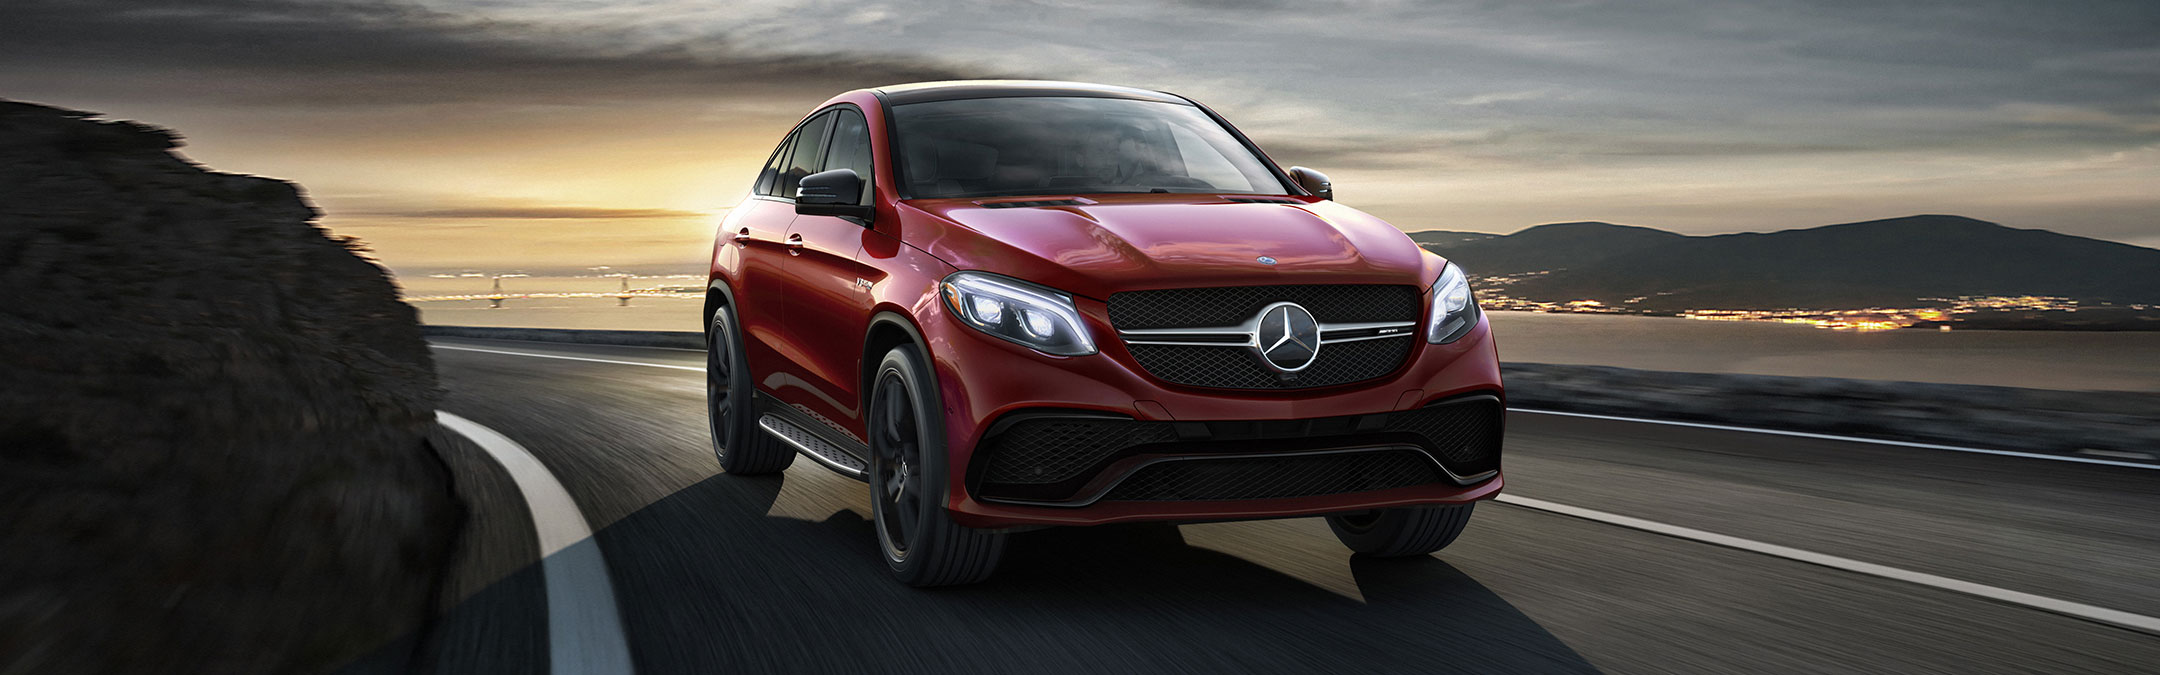 2019 Mercedes-AMG GLE 4MATIC Coupe